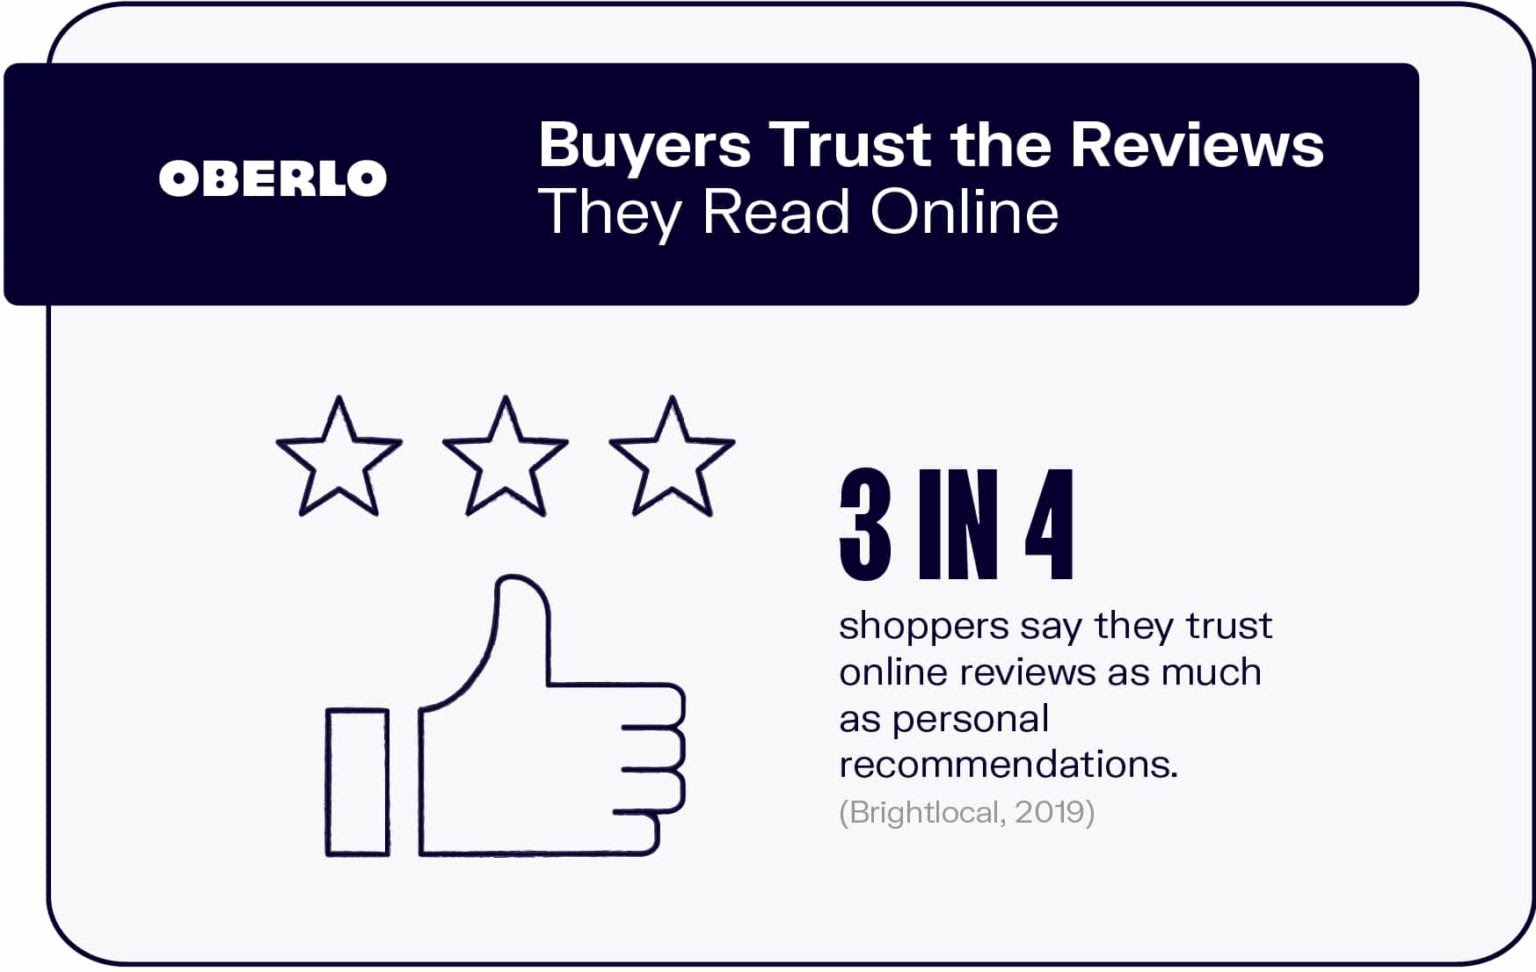 Buyers that trust reviews